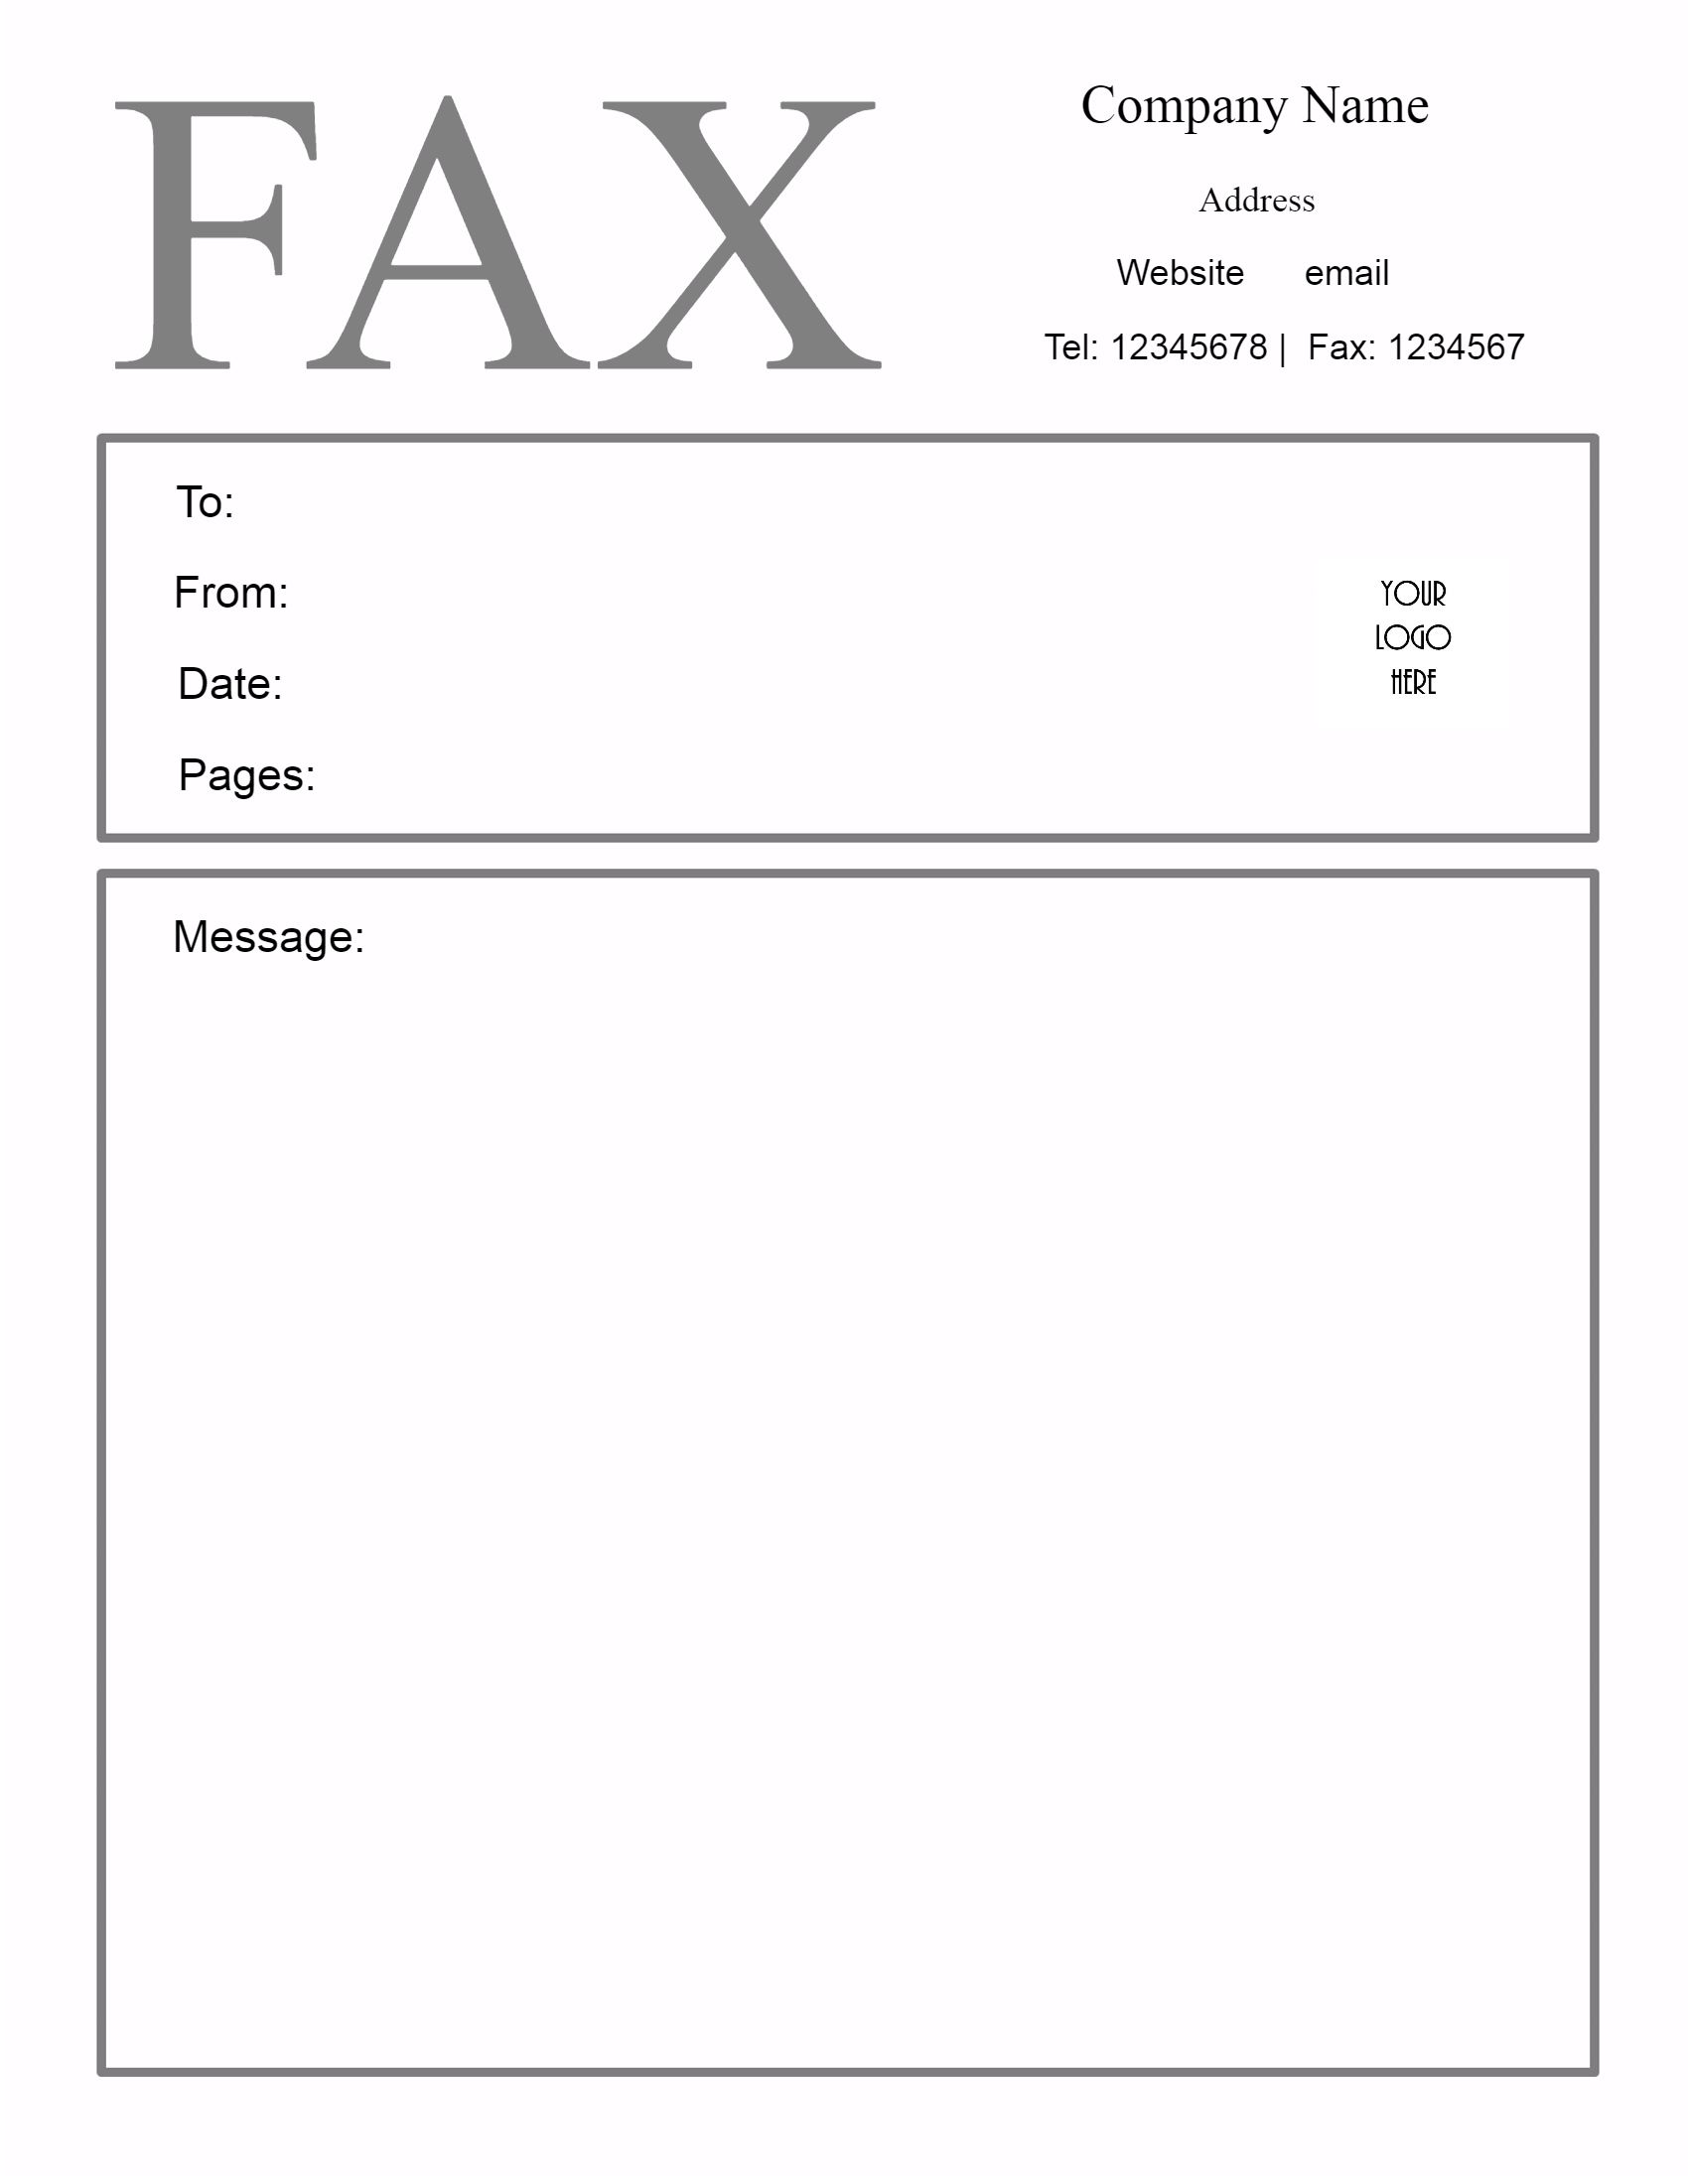 Fax Cover Sheet  Blank Cover Letter Template